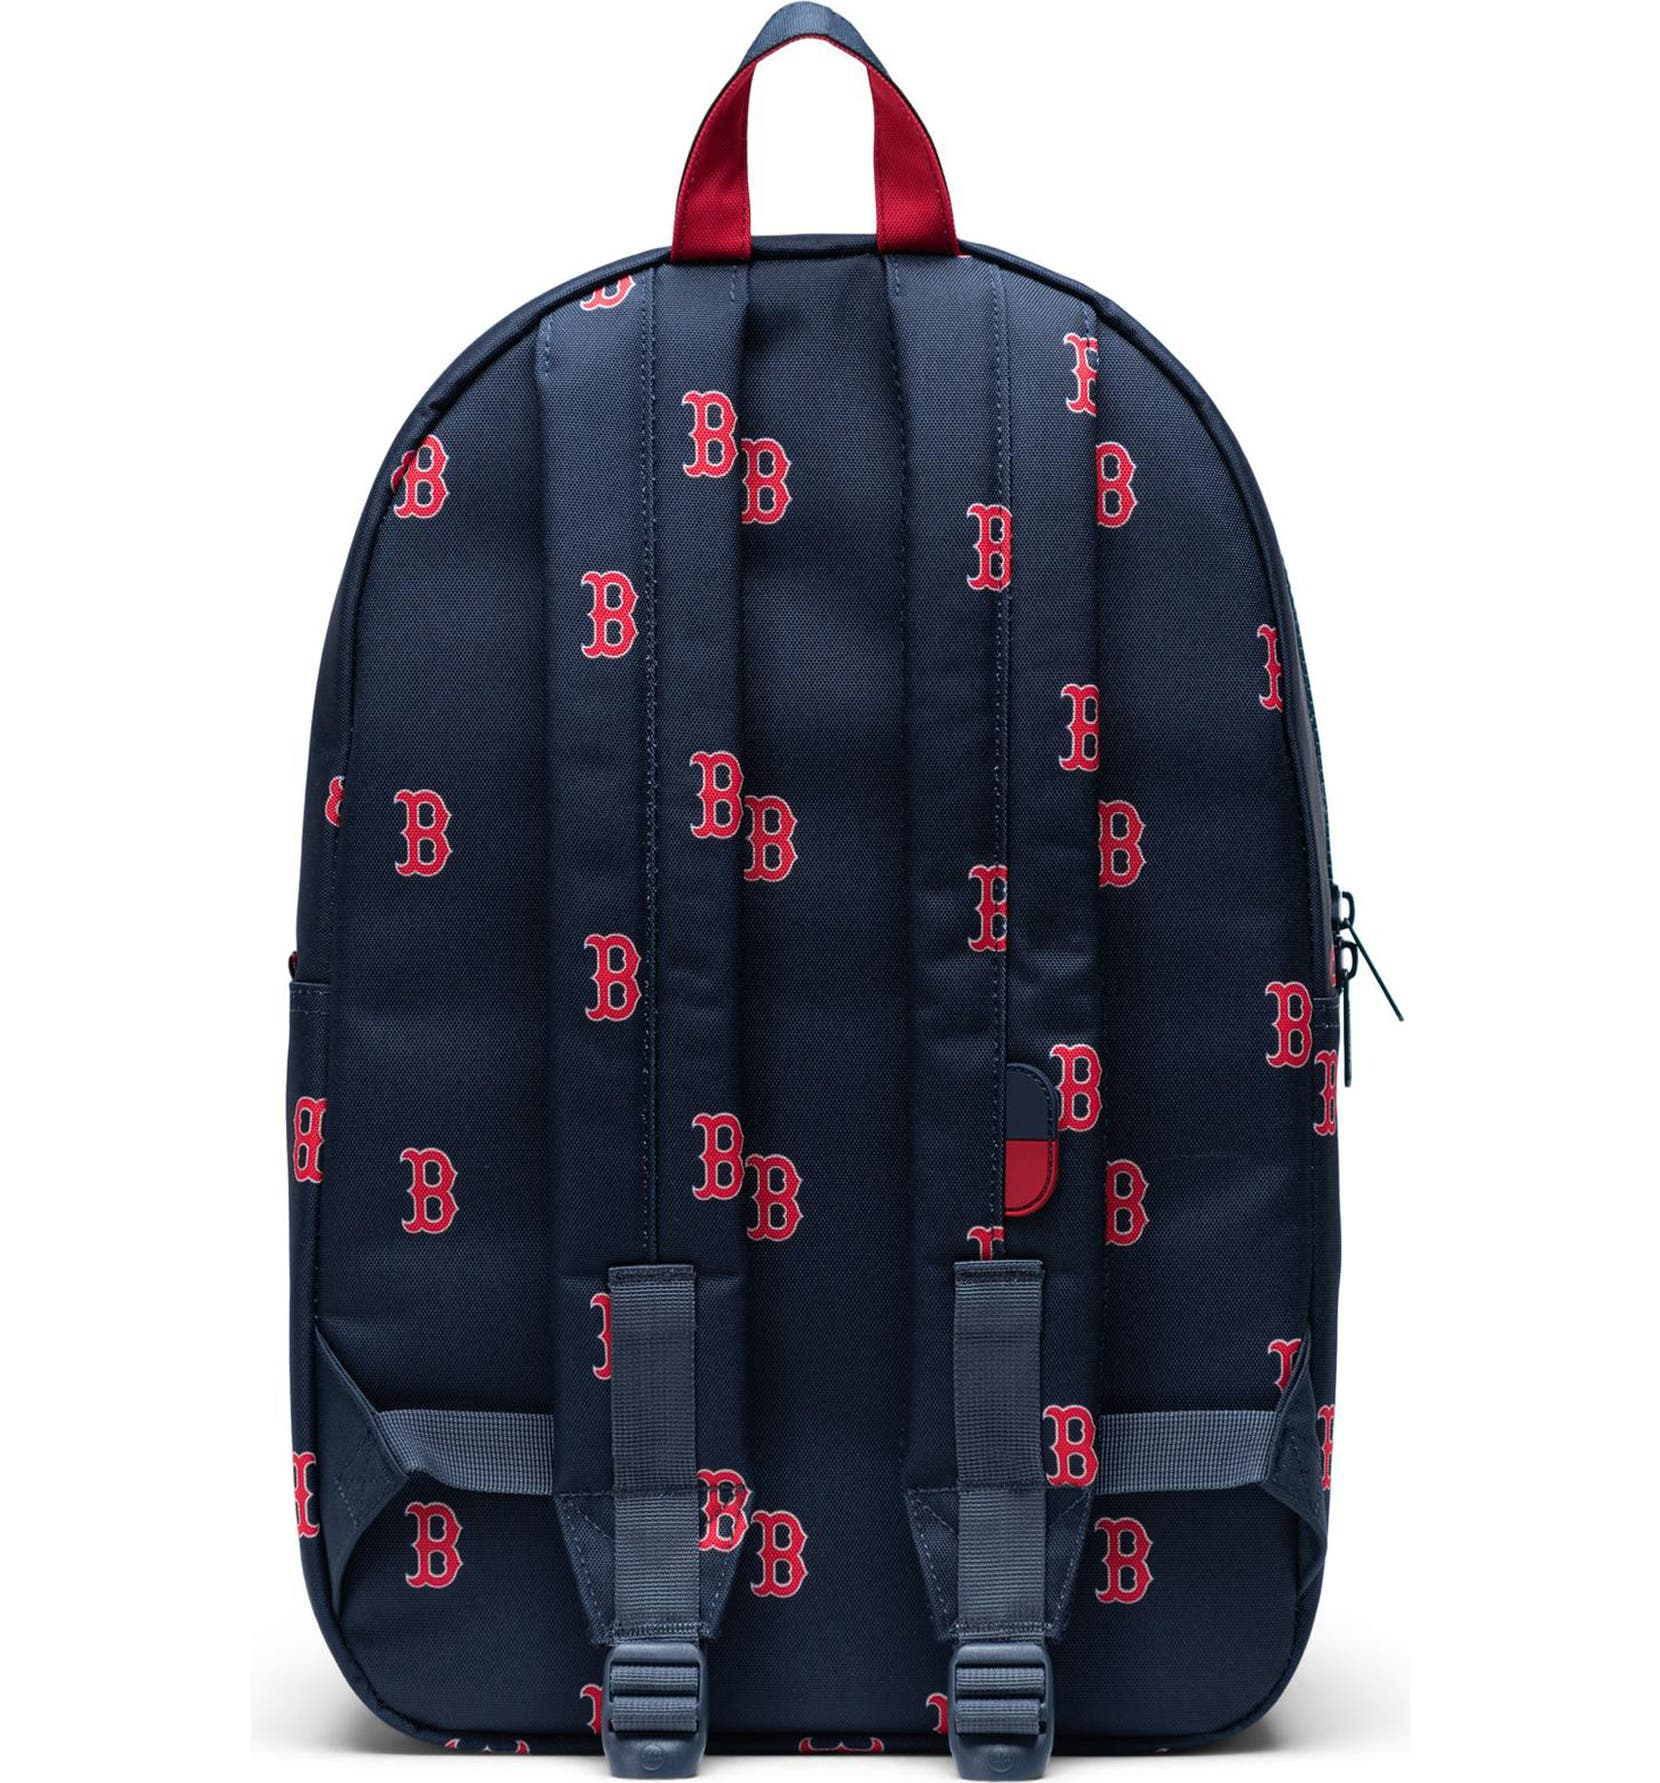 317ce21668cf Herschel Supply Co. Settlement - MLB Outfield Backpack